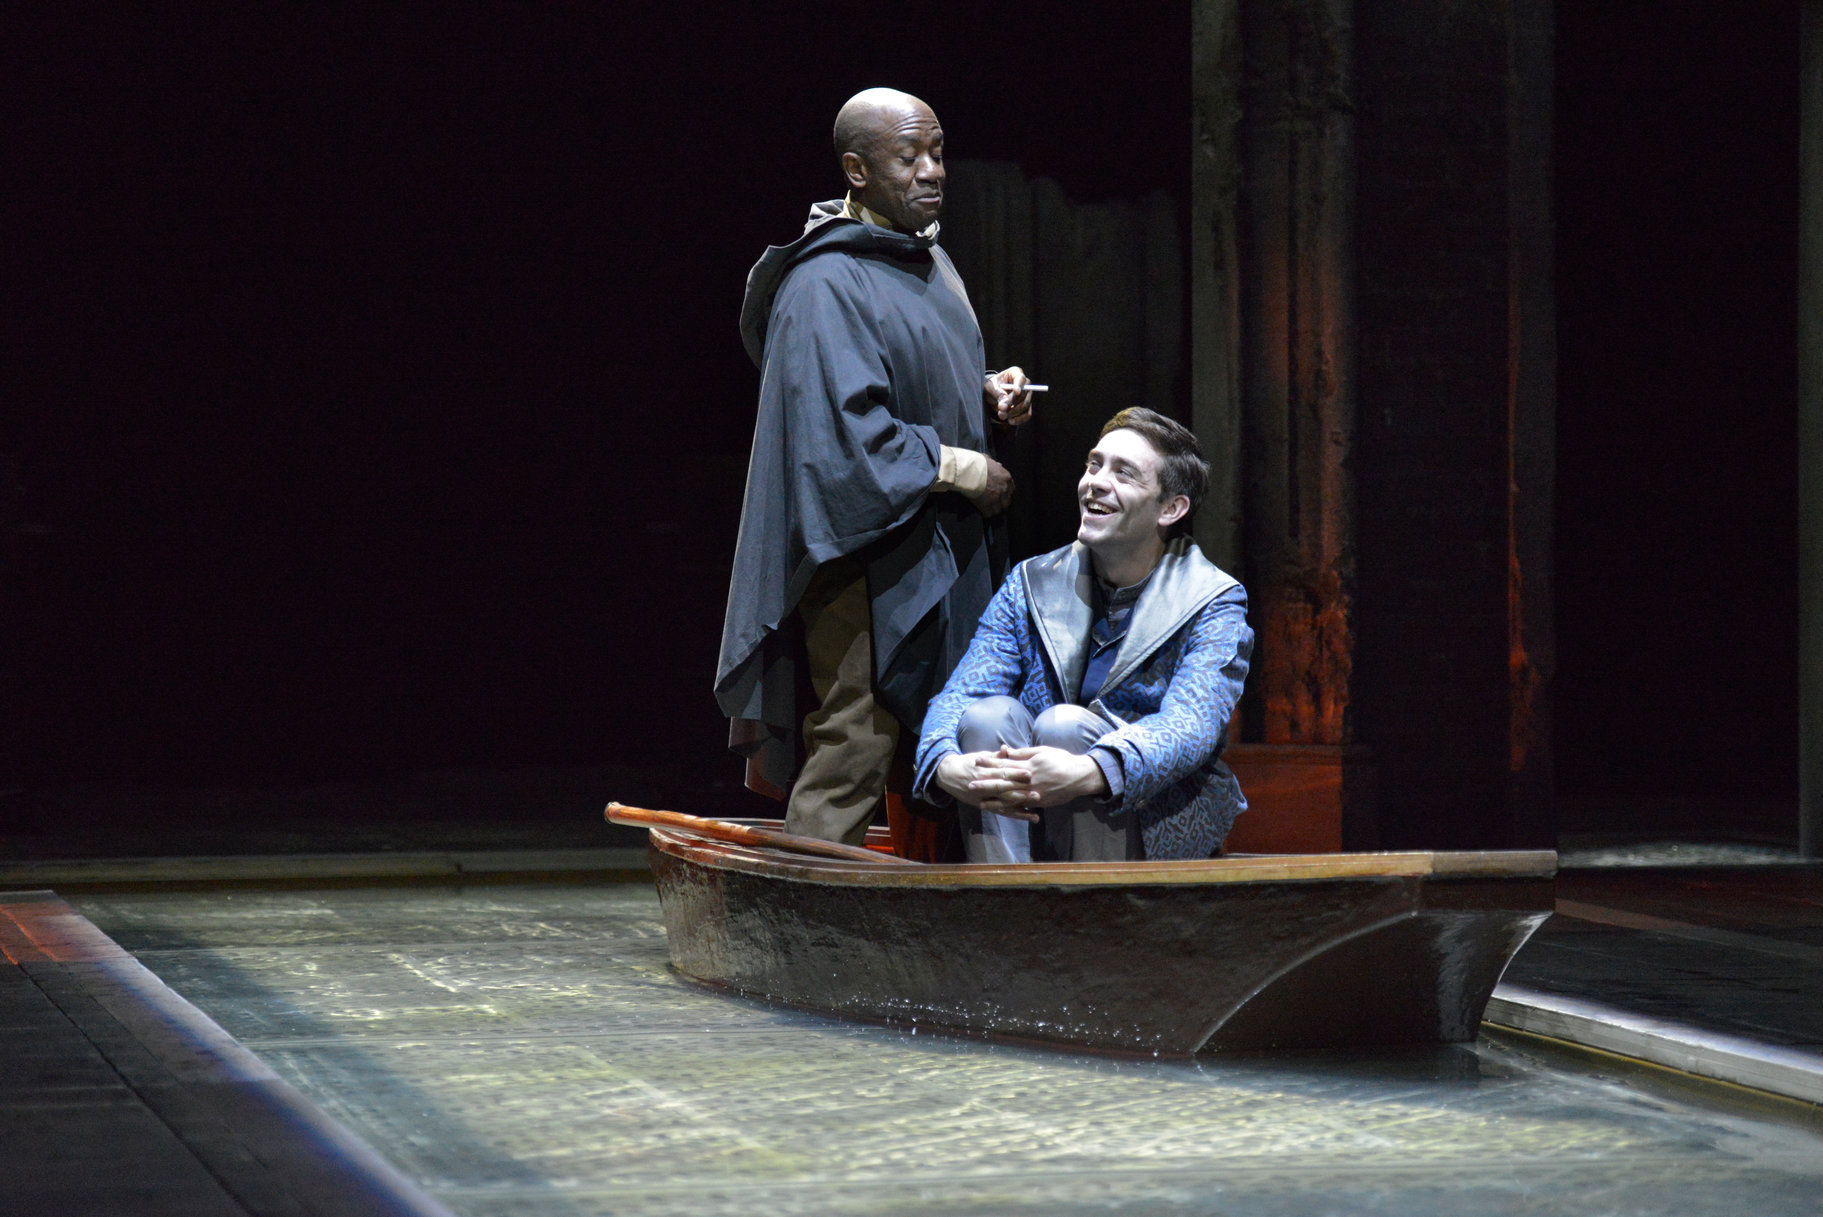 iago rewrites othello a play that An analysis of iago's manipulation of each of the characters in othello the essay describes in detail iago's manipulation of cassio, desdemona, emilia, roderigo, and othello.